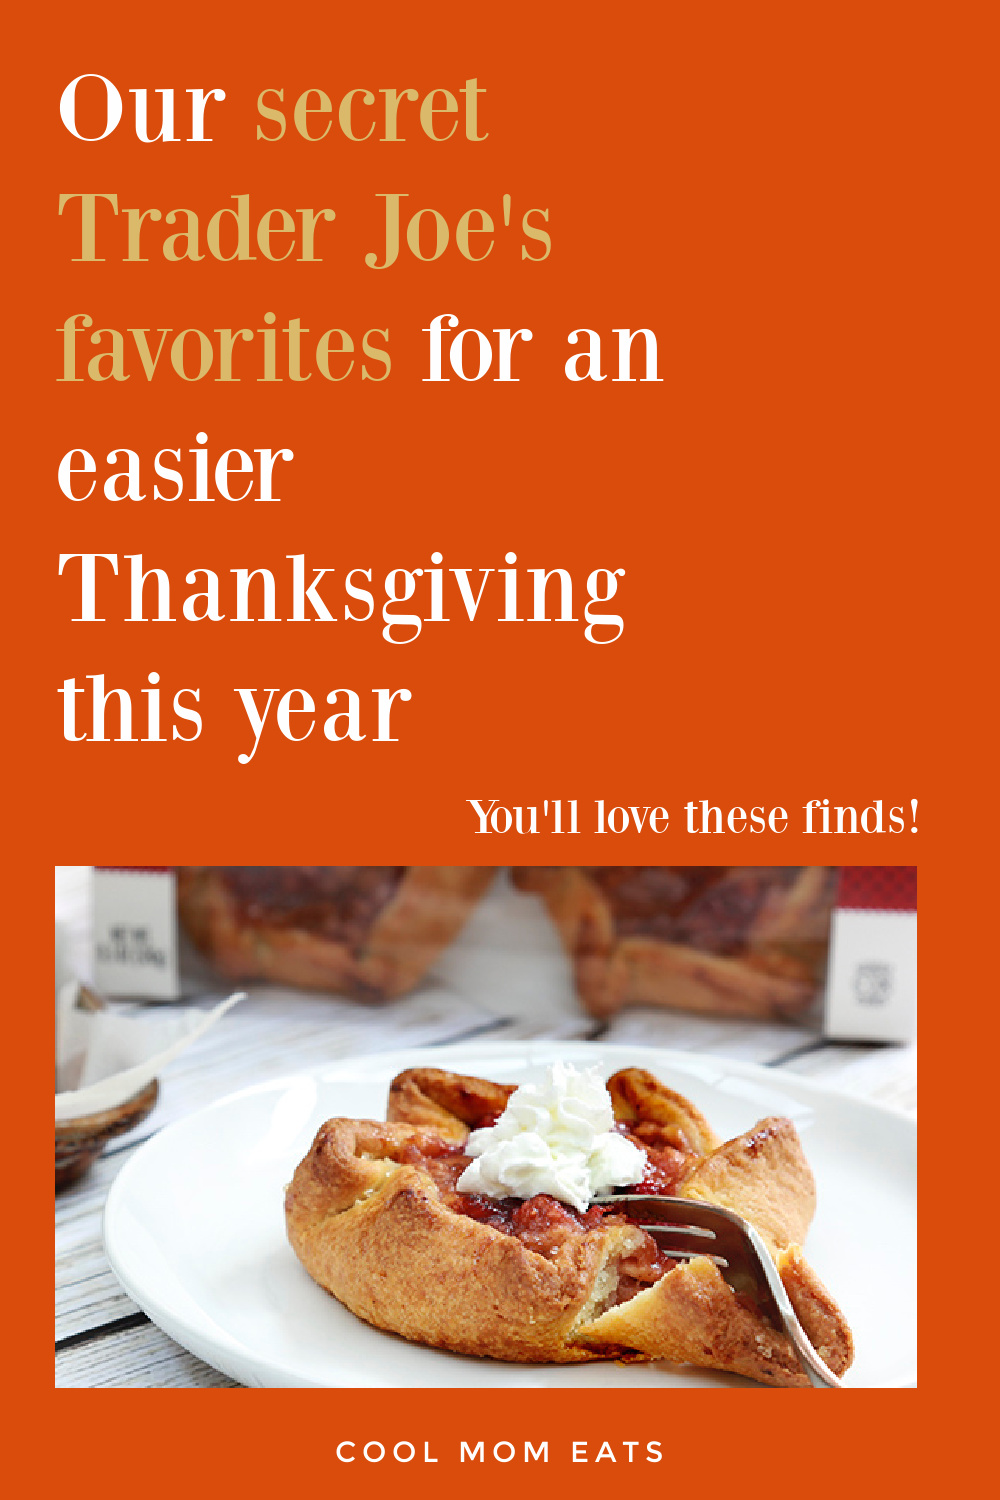 Making Thanksgiving easier with these Trader Joe's foods, cheats, hacks, and semi-homemade ideas! | coolmomeats.com